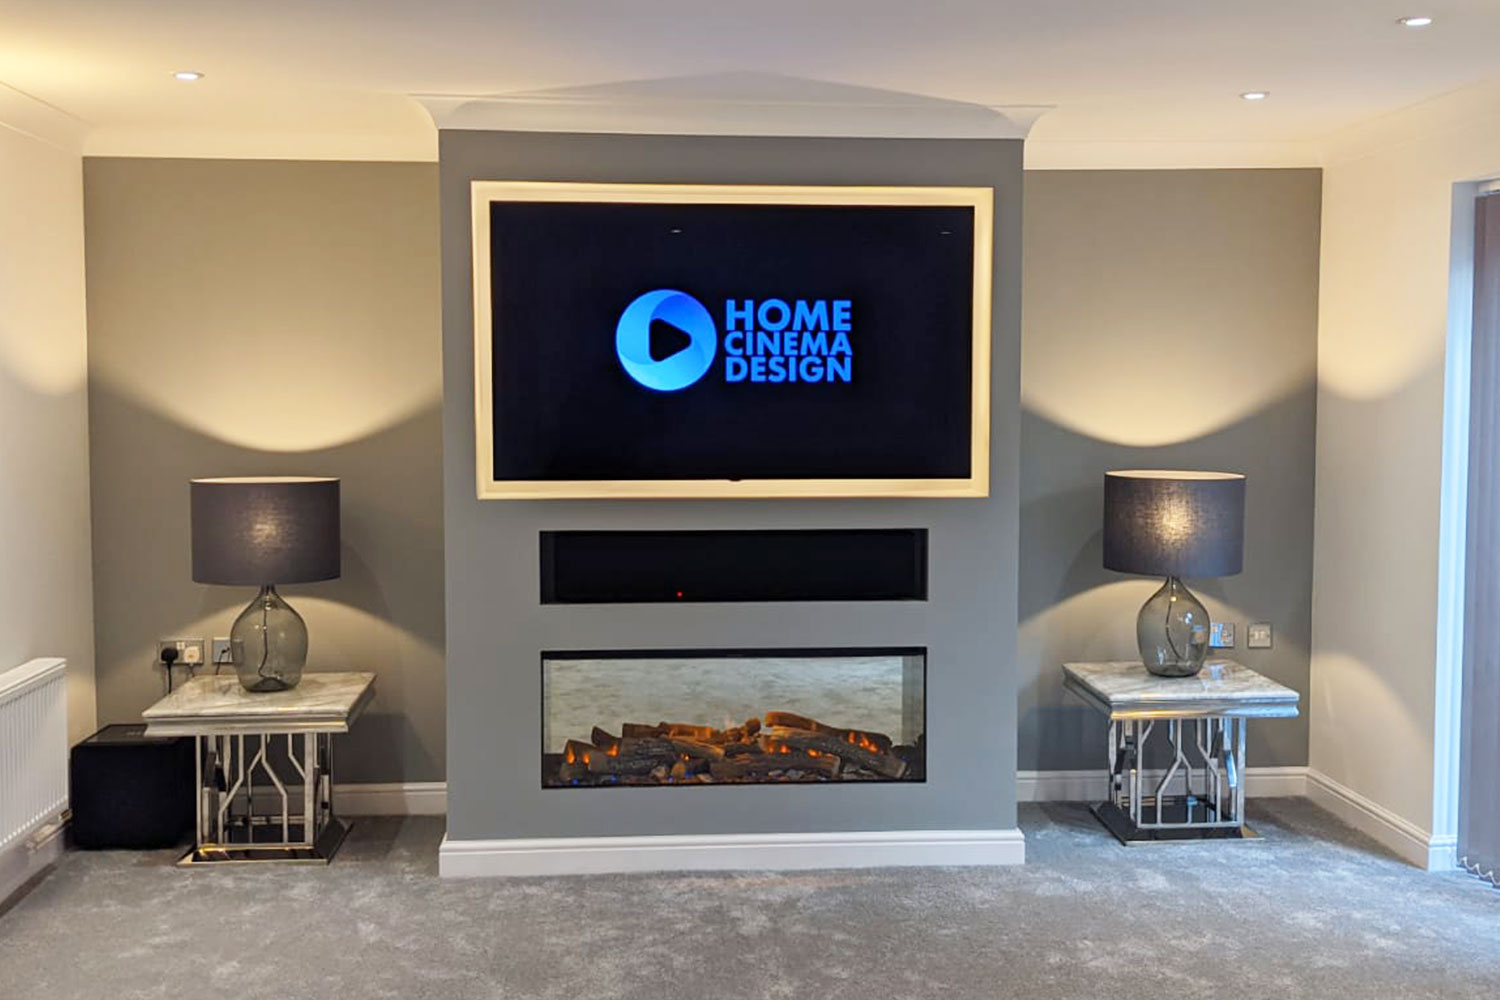 Home Cinema Design - What We Do - Specialists in Audio Visual & Smart Home Installations